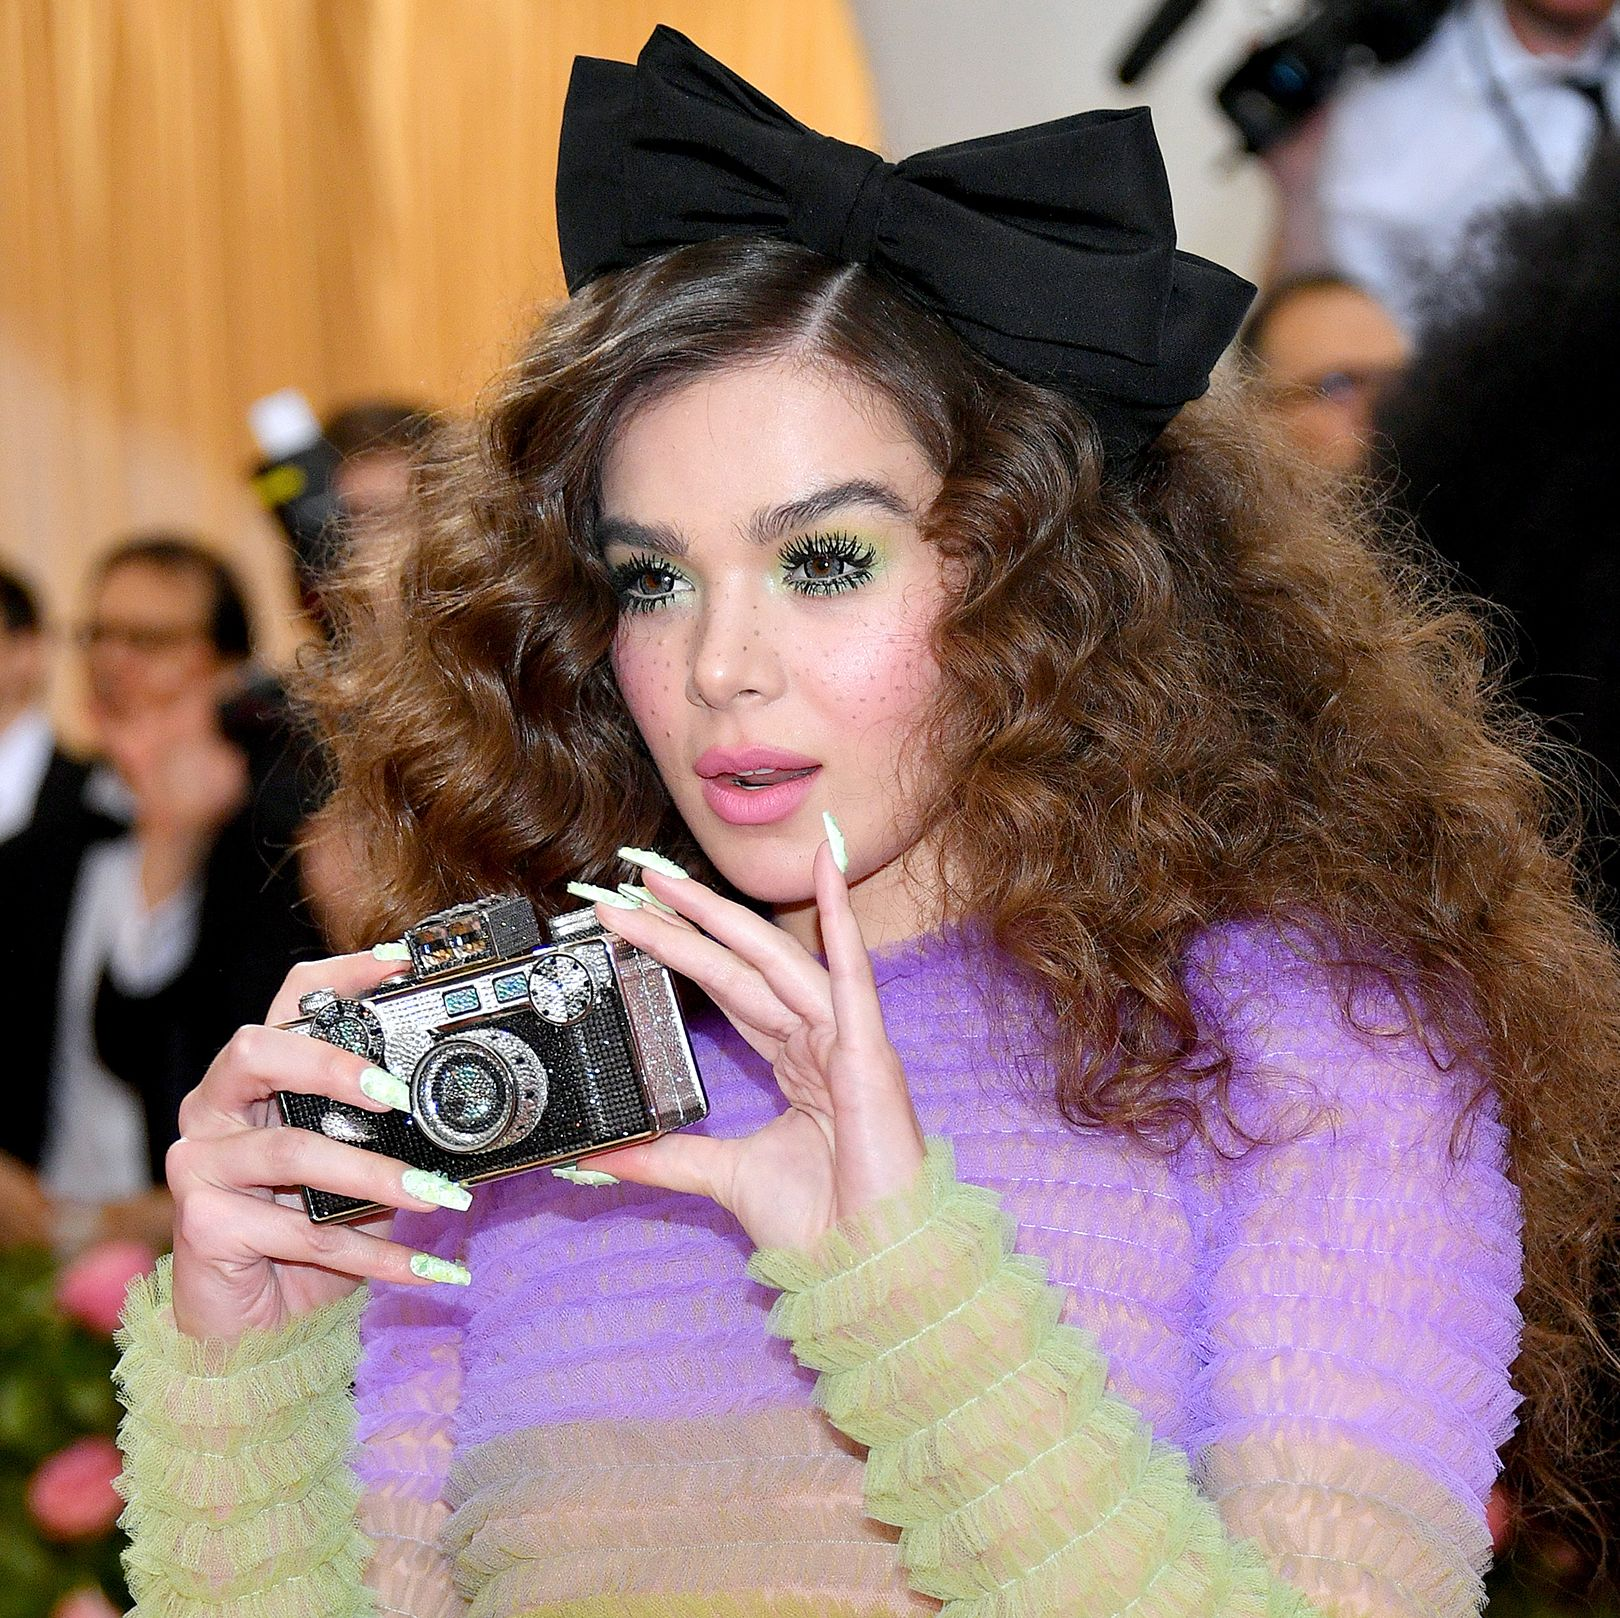 Hailee Steinfeld Steinfeld looked like a doll in Twiggy-like lashes, lime green eyeshadow, and super bright pink lips and cheeks. Her curls, styled with an oversized black bow, looked super fluffy.